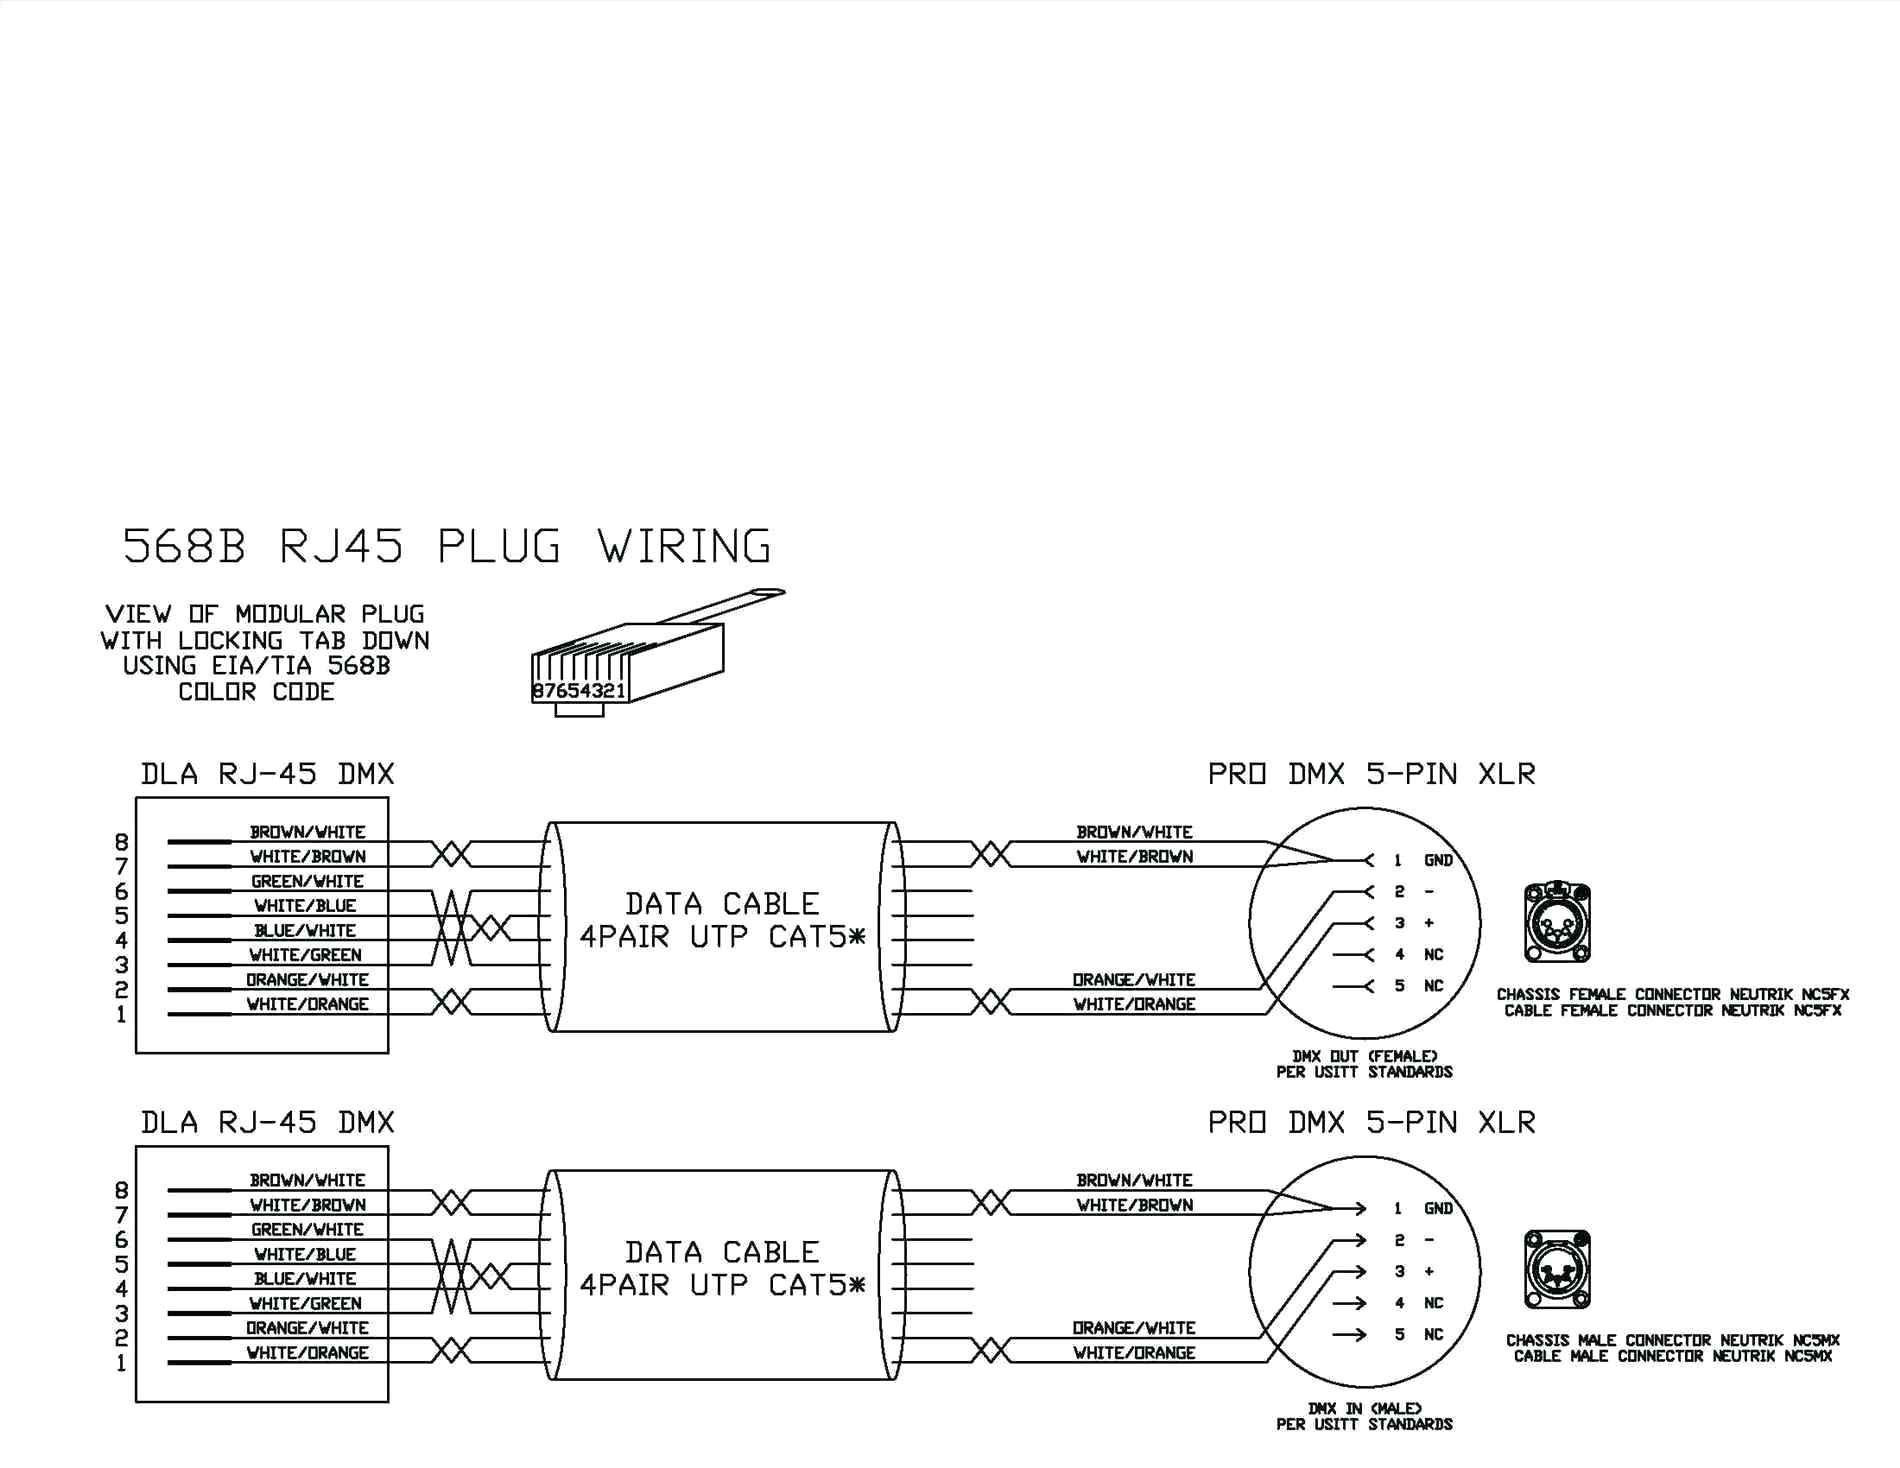 Wm 5405 Usb To Ps 2 Mouse Pinout 6 Pin Wire Diagram Wiring Diagram